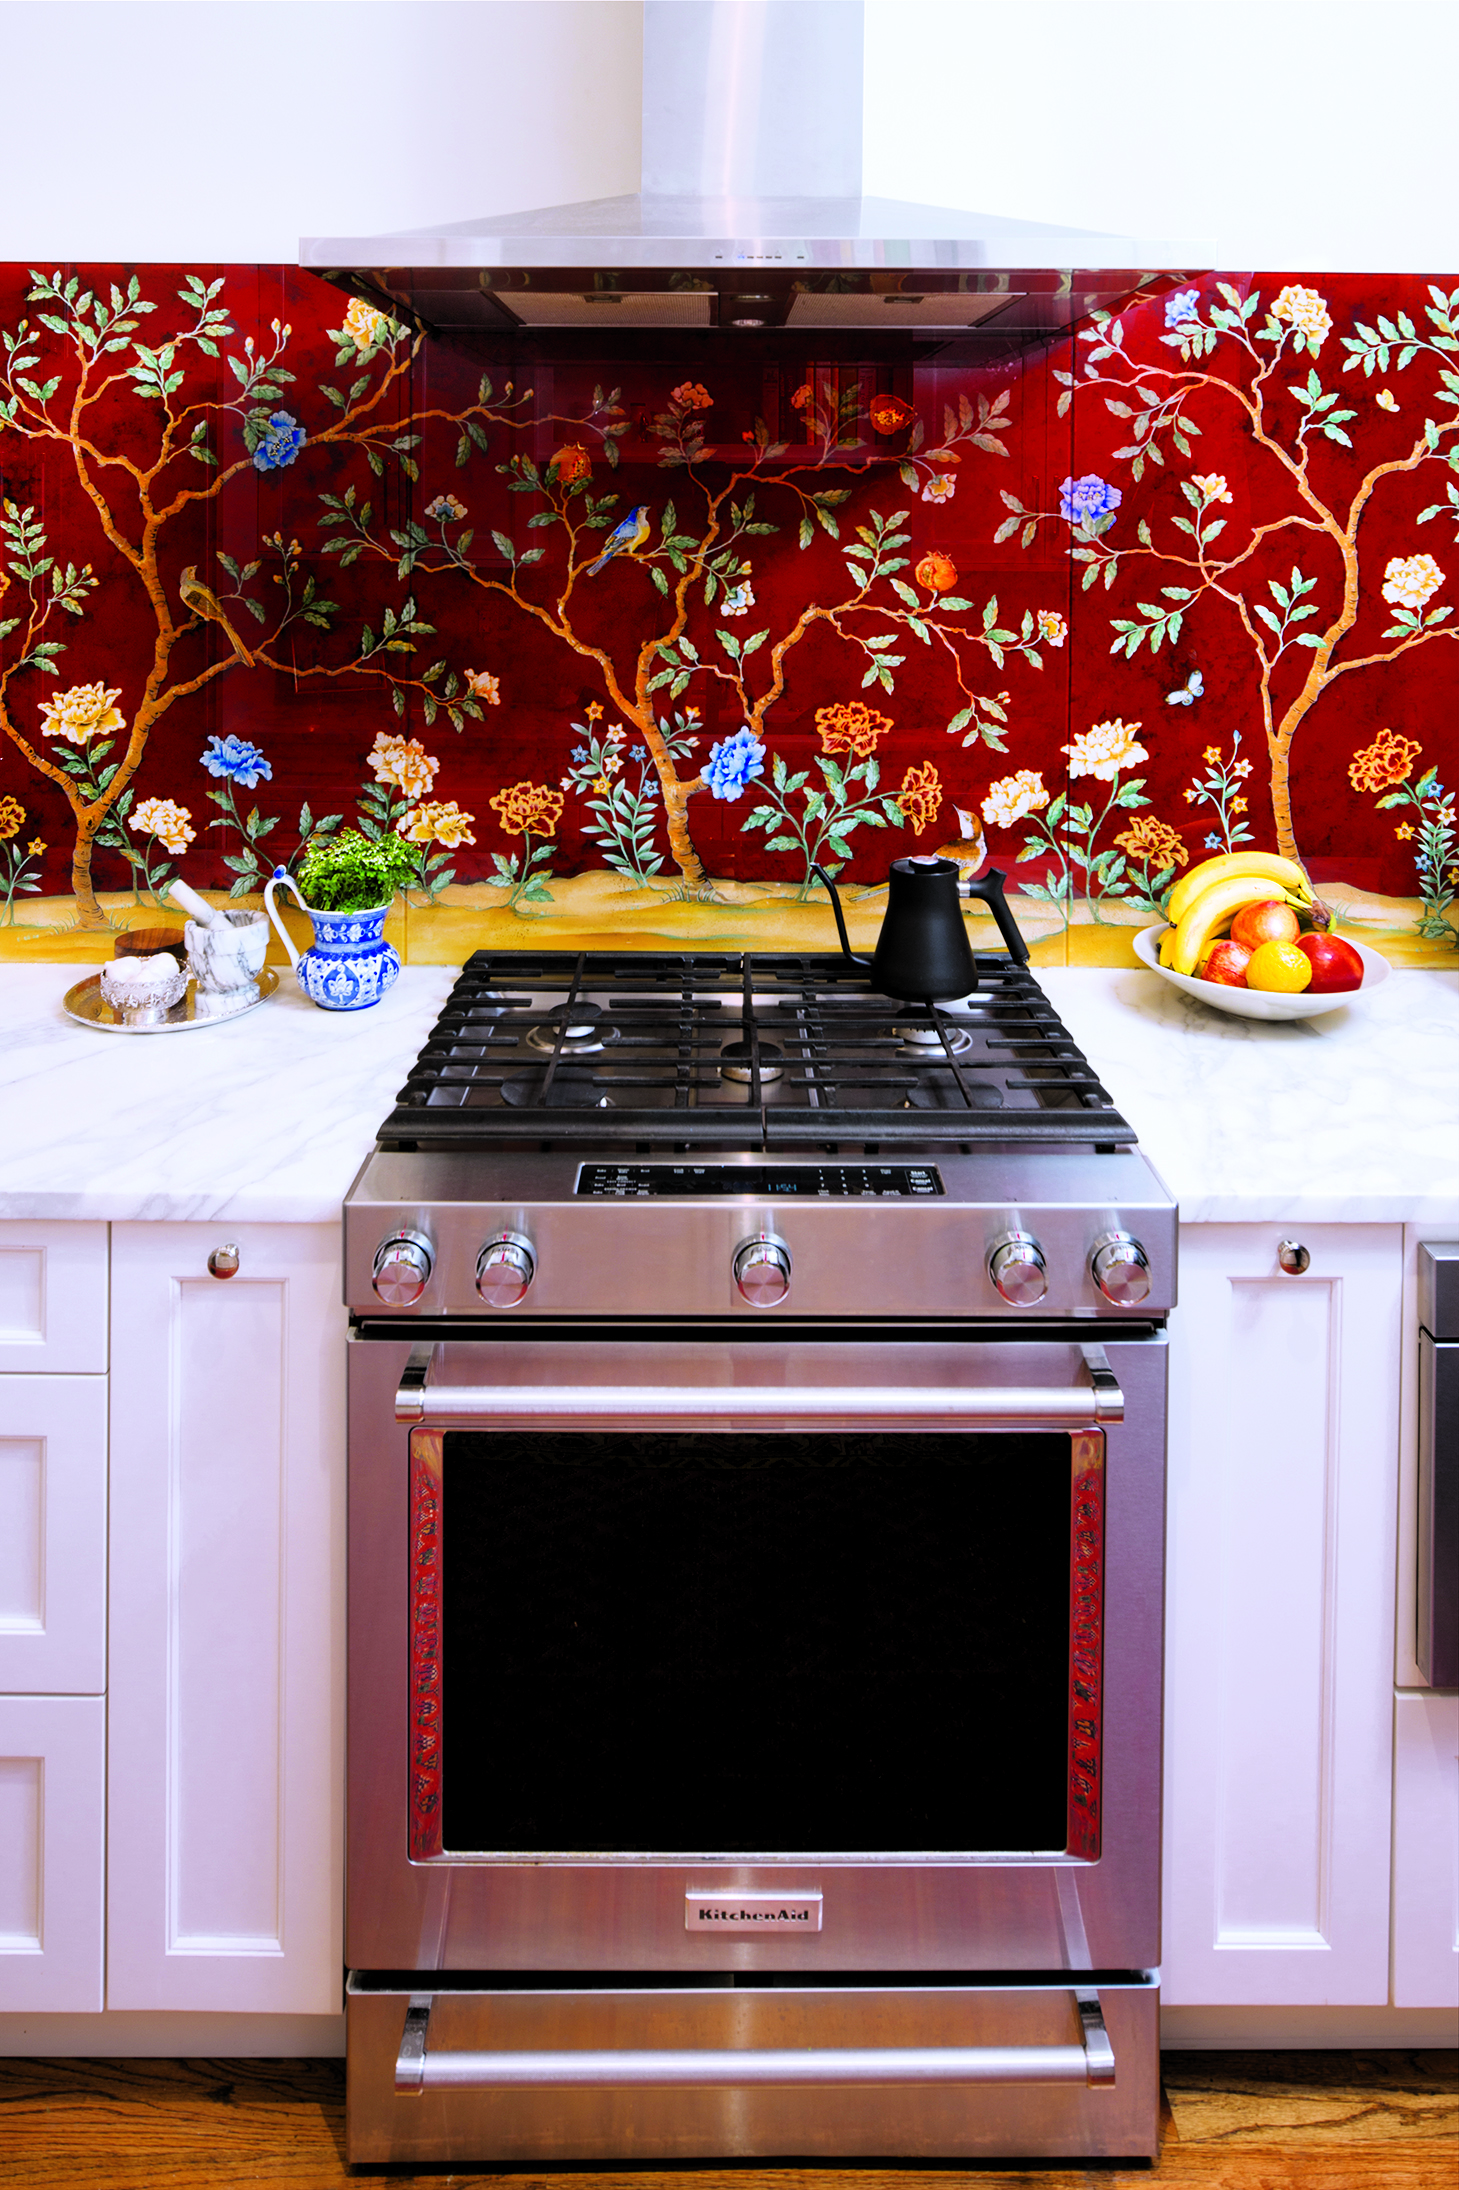 Homeowner and designer Annie Eliott commissioned a backsplash depicting Mid-Atlantic birds and flowers. Photograph by Jenn Verrier Photography.